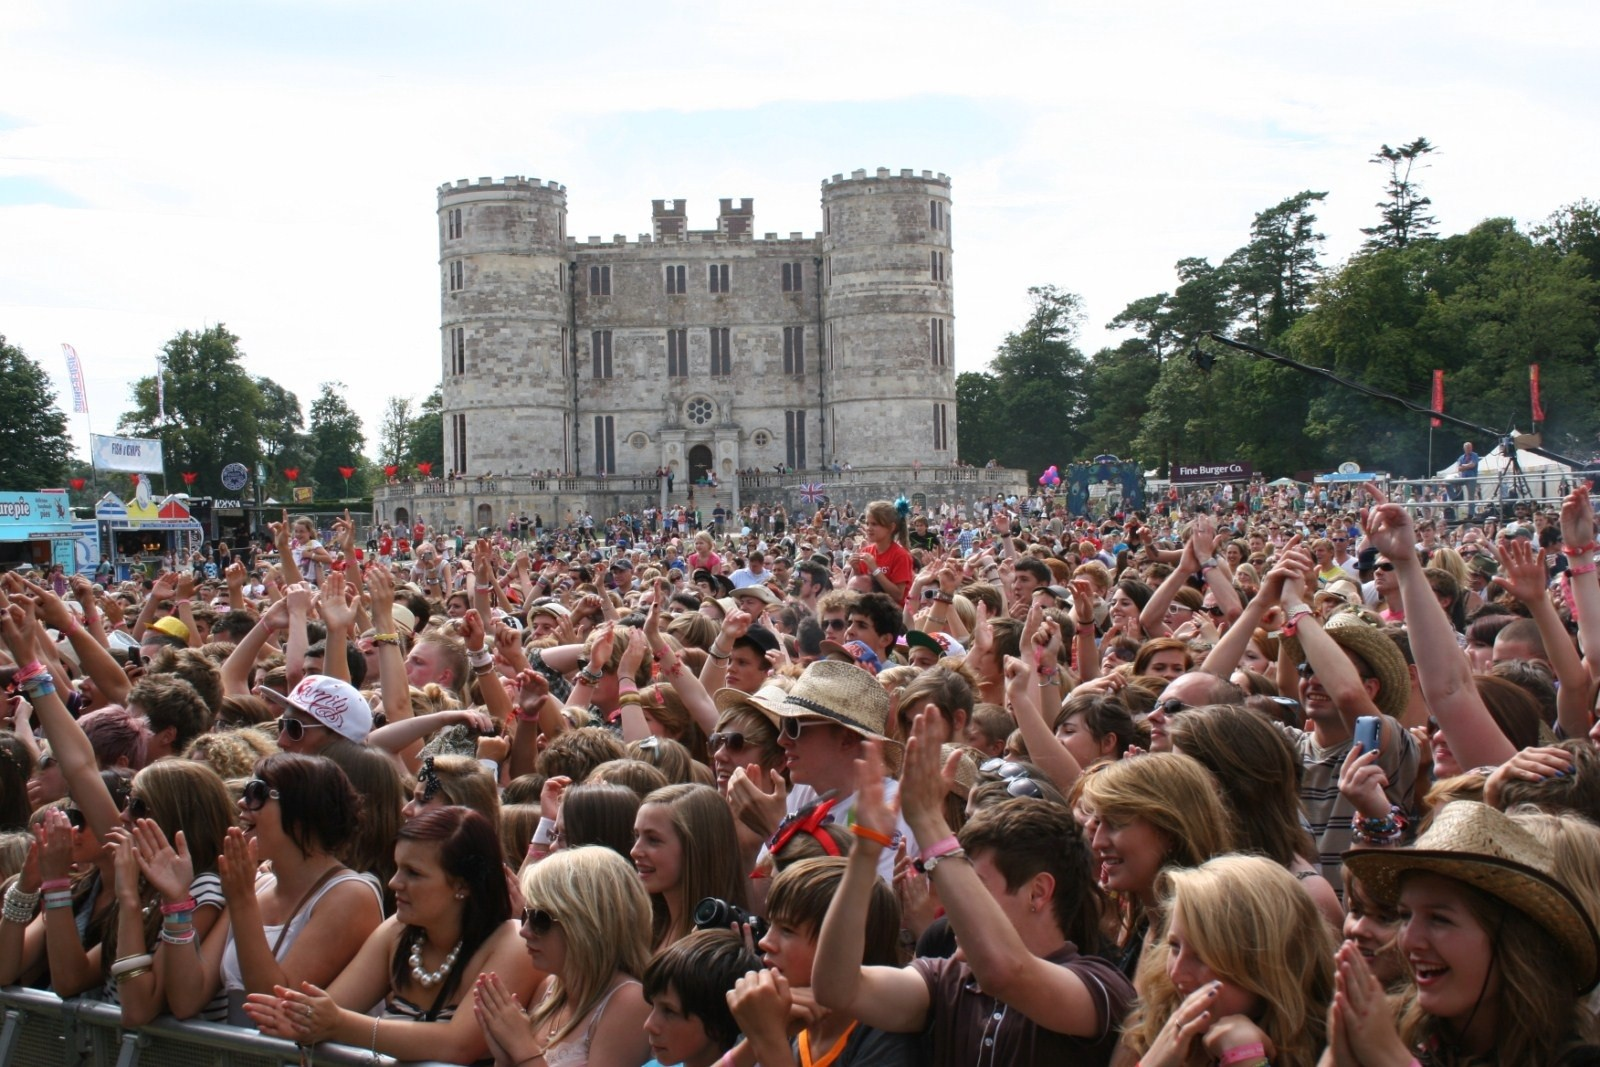 mfm-go-all-happy-campers-at-camp-bestival_14953